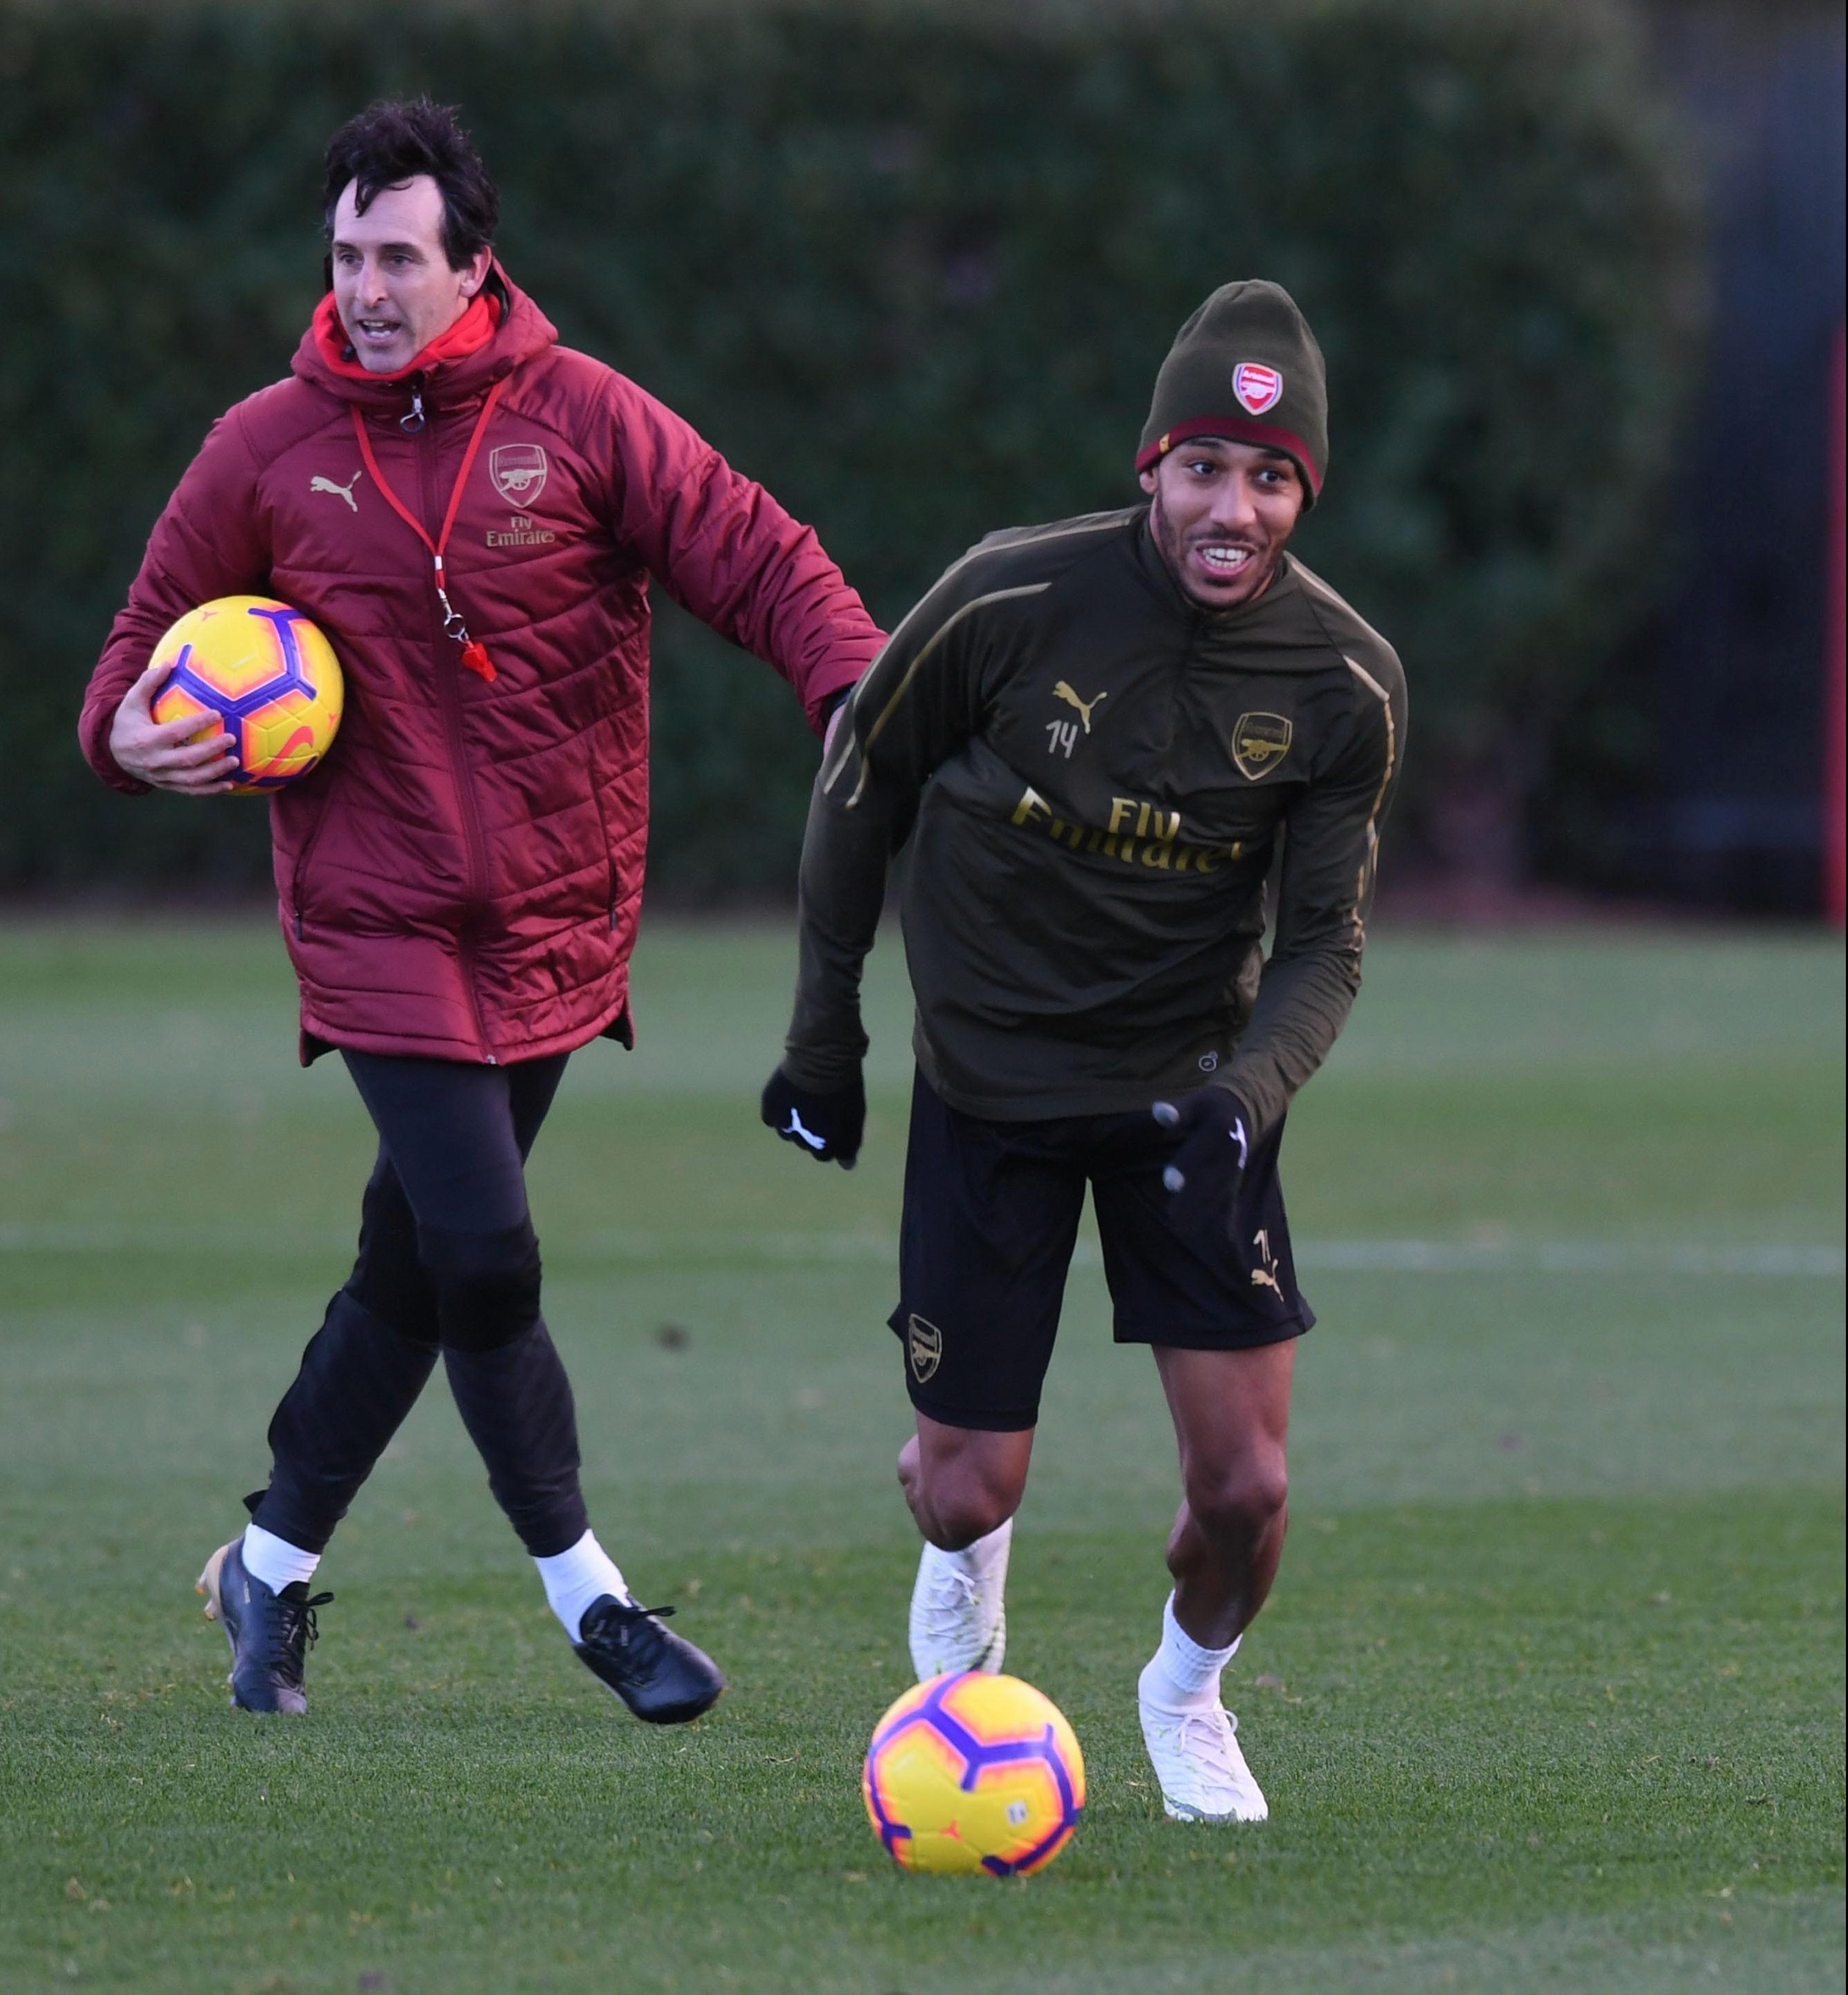 6am Arsenal news: Emery resists hippy crack punishment, Gunners can't get Chambers back, Holding out for season